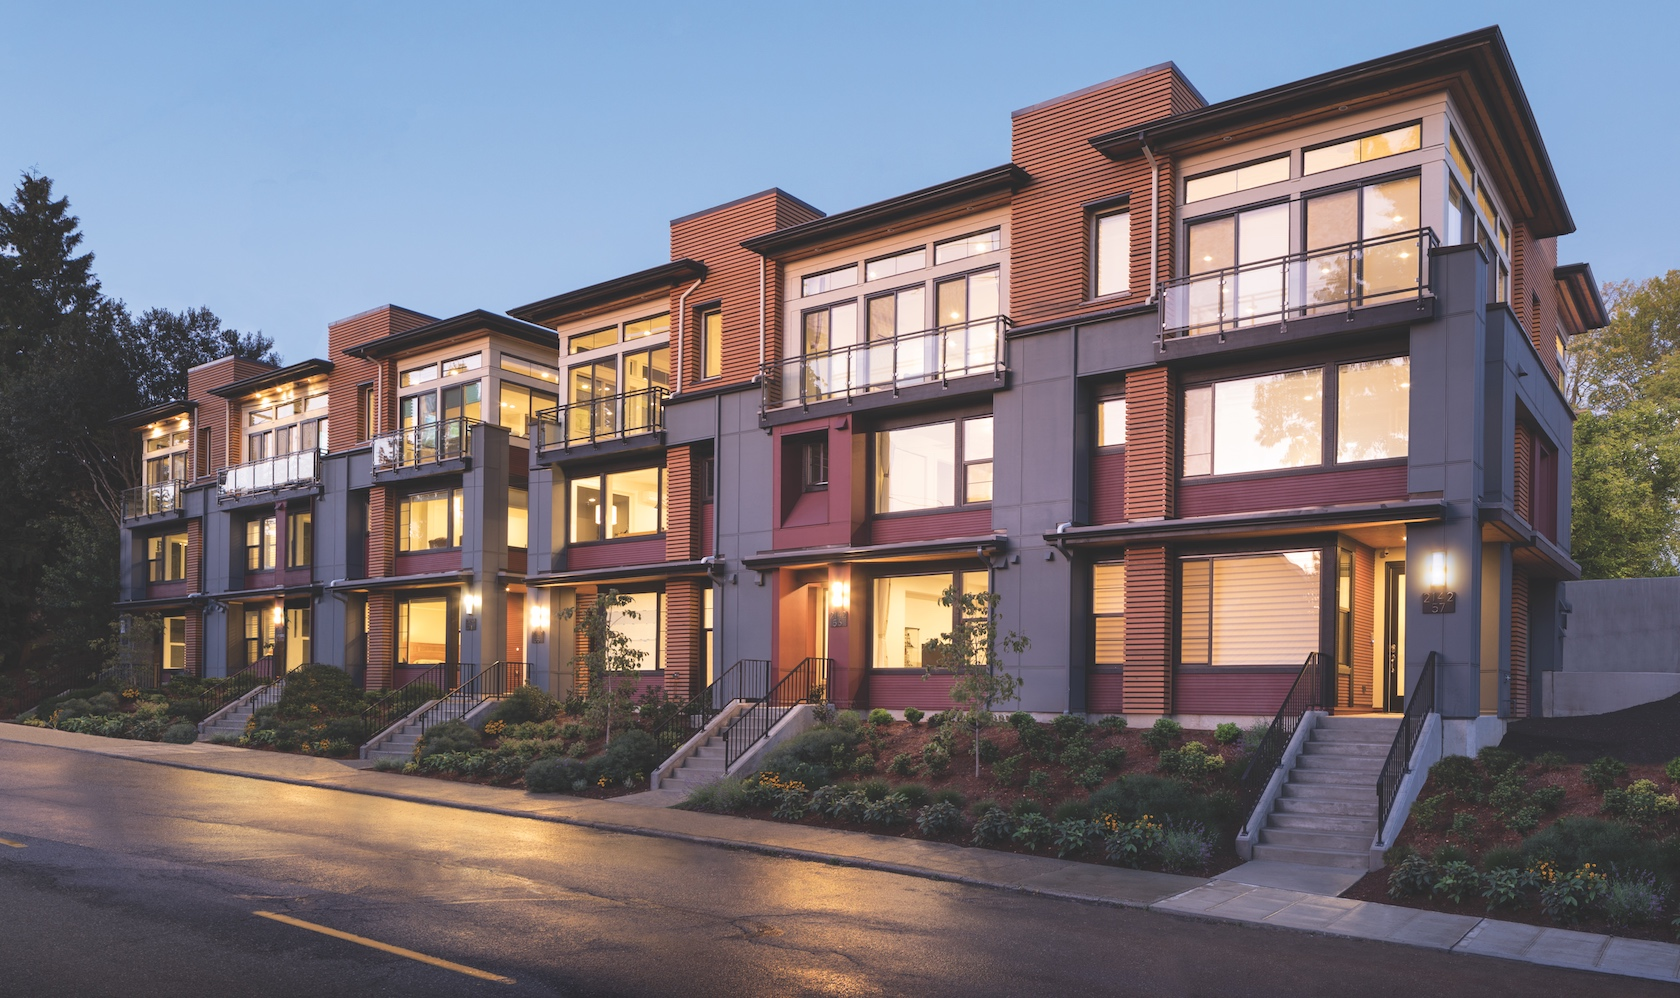 Luxury Townhomes in McGraw Square at Queen Anne